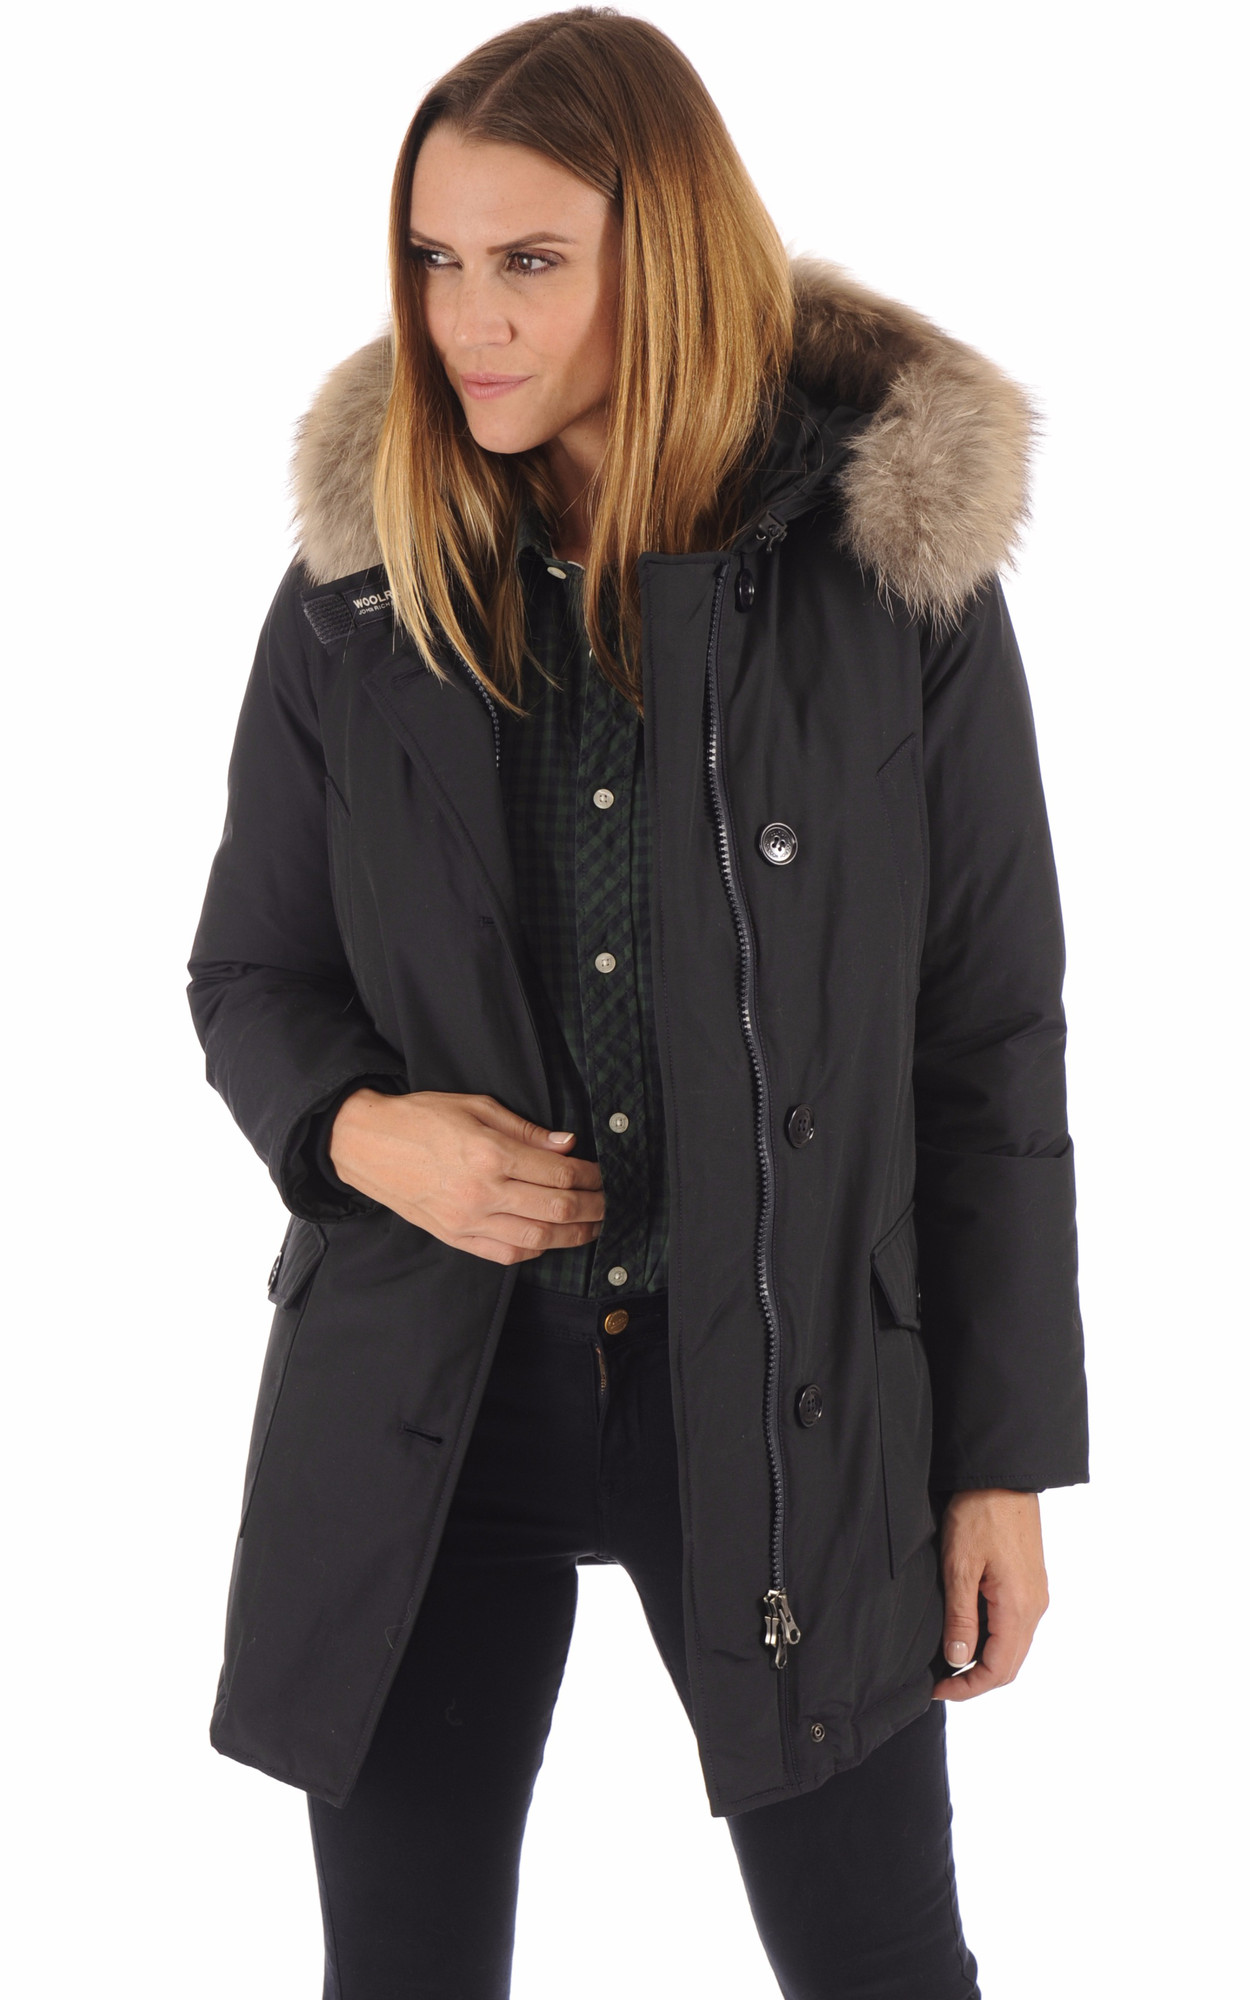 WWCPS2479 ARTIC PARKA